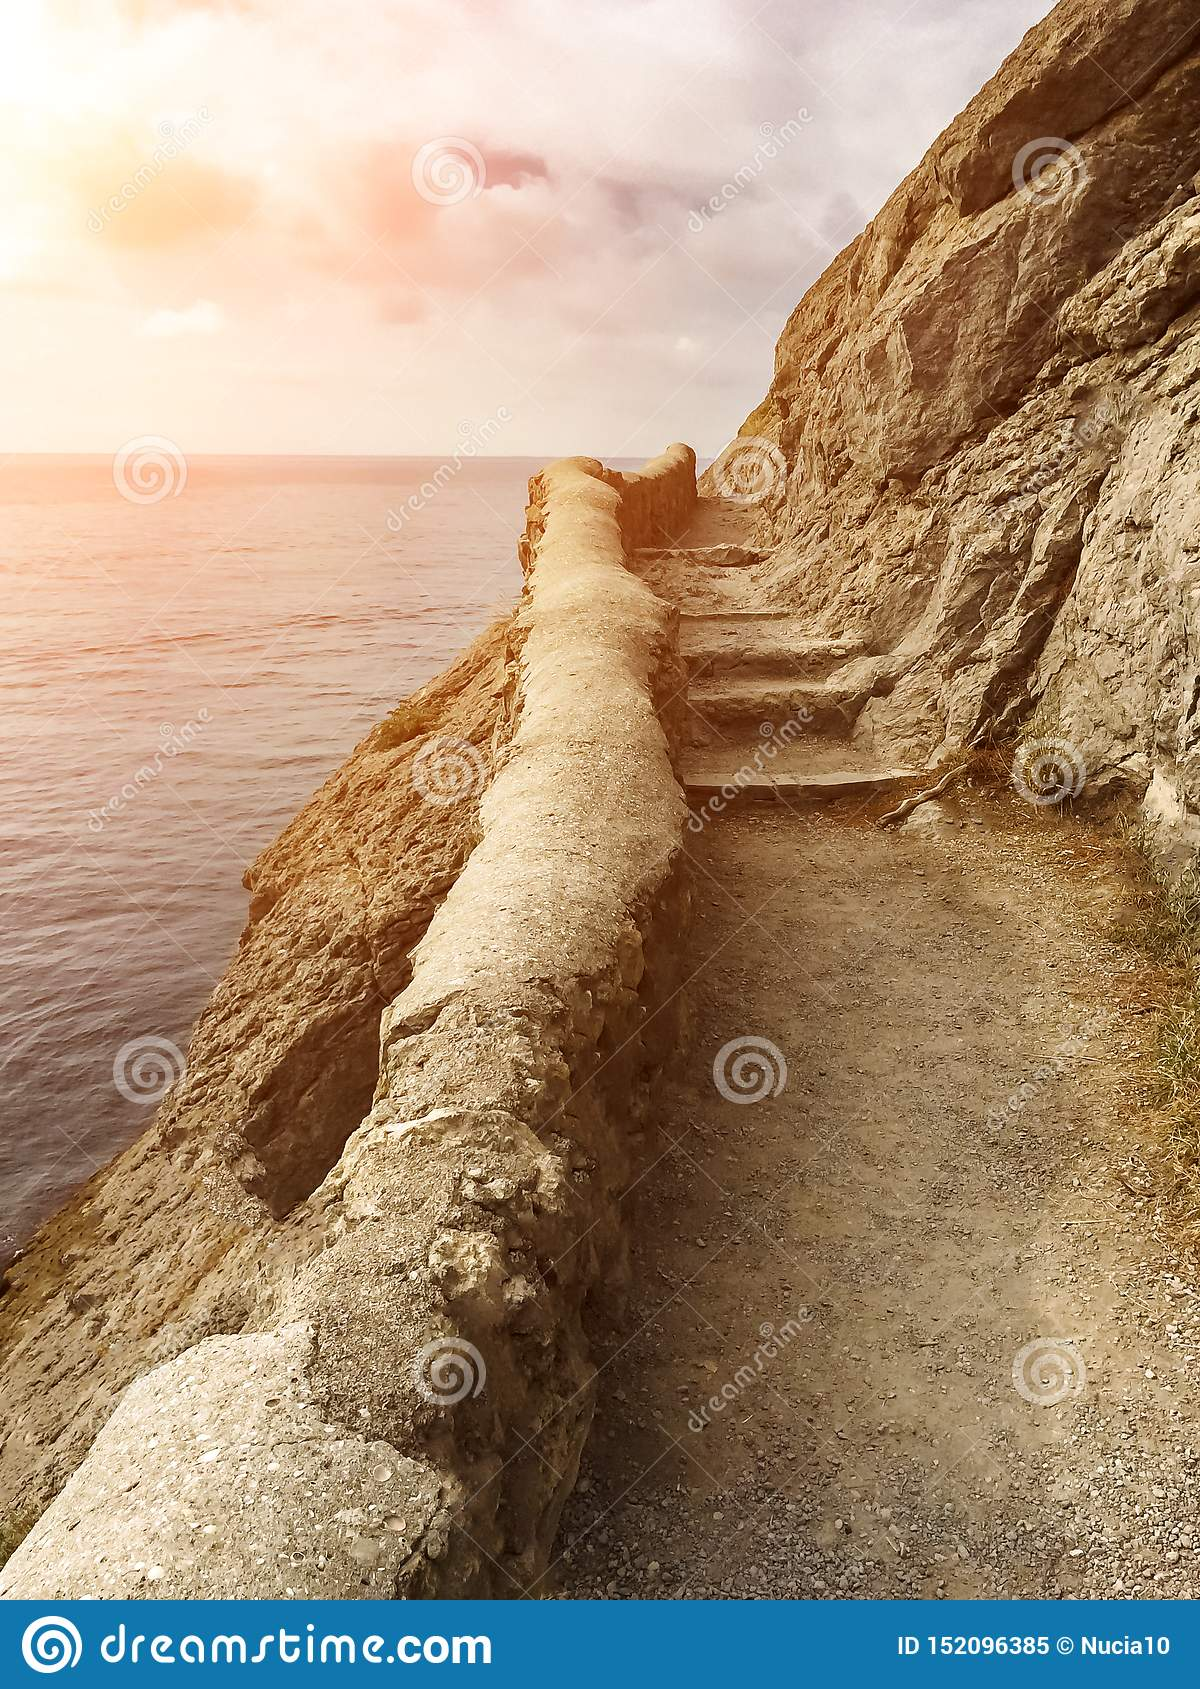 Edge of the cliff with an ancient stone path along the sea with stone steps against the sea with the setting sun, vertical frame